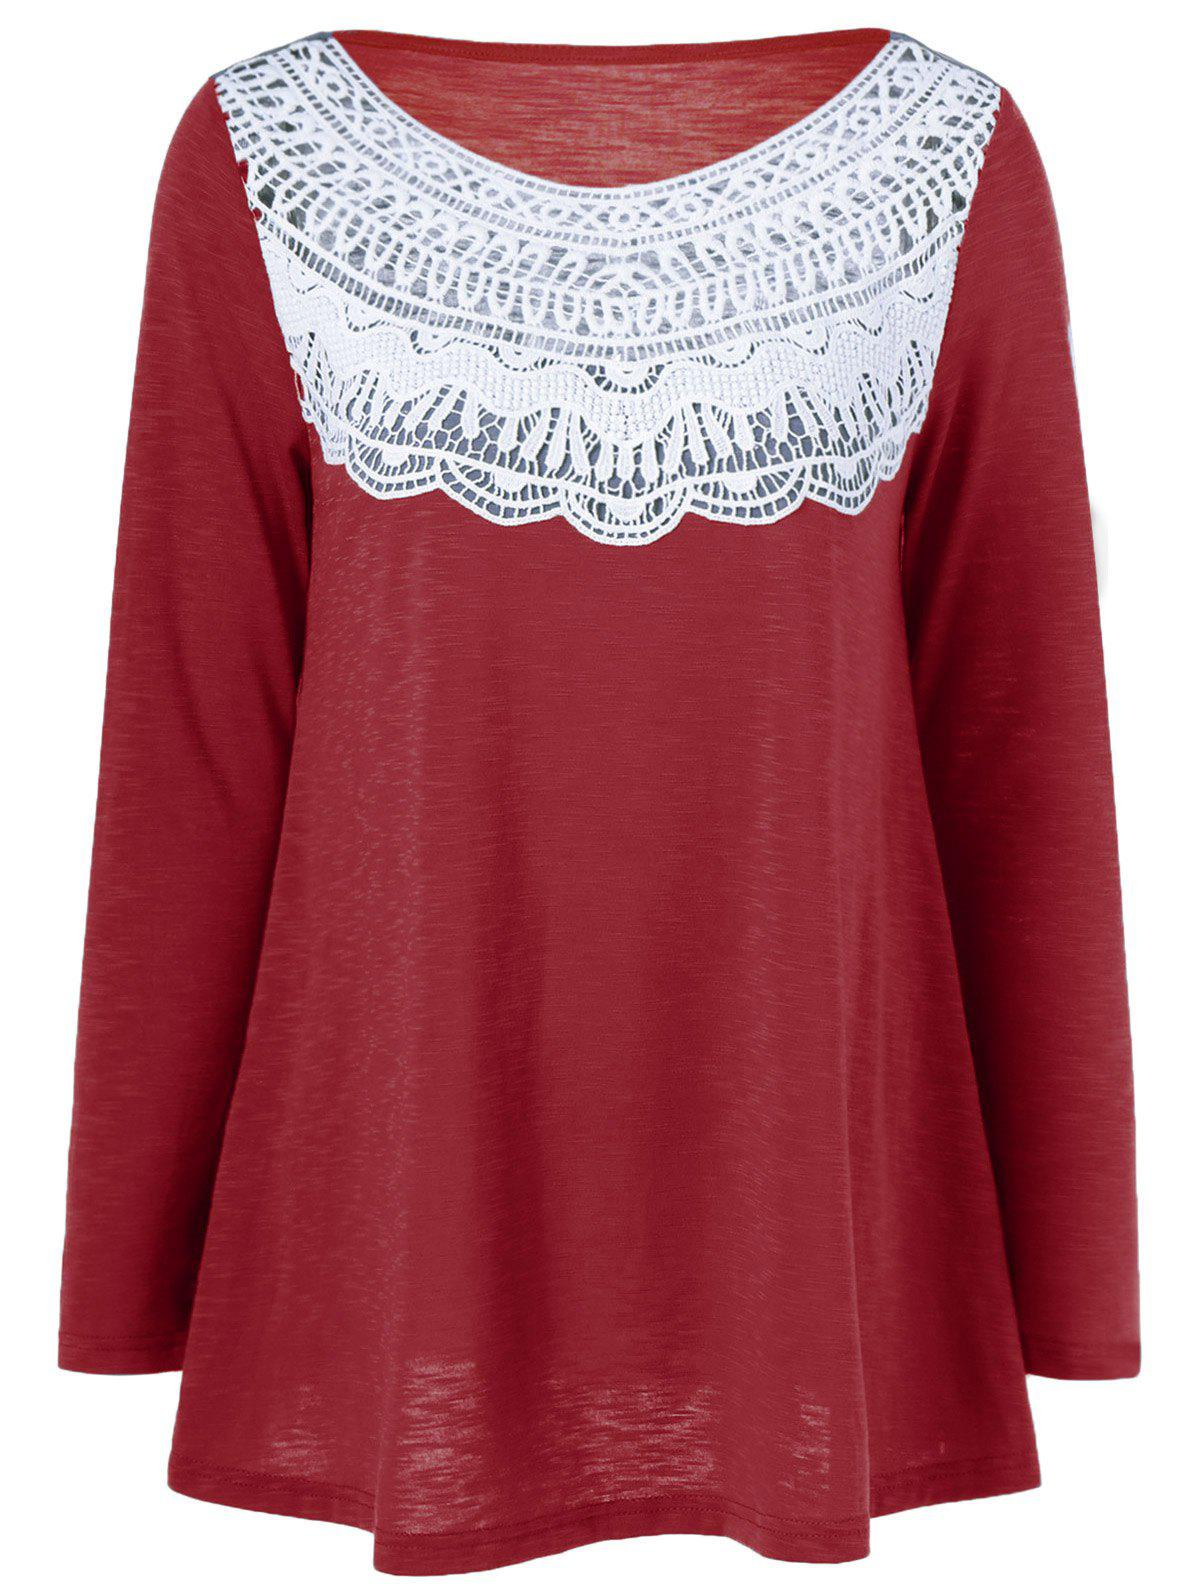 Lace Splicing Pleated T-Shirt - RED M